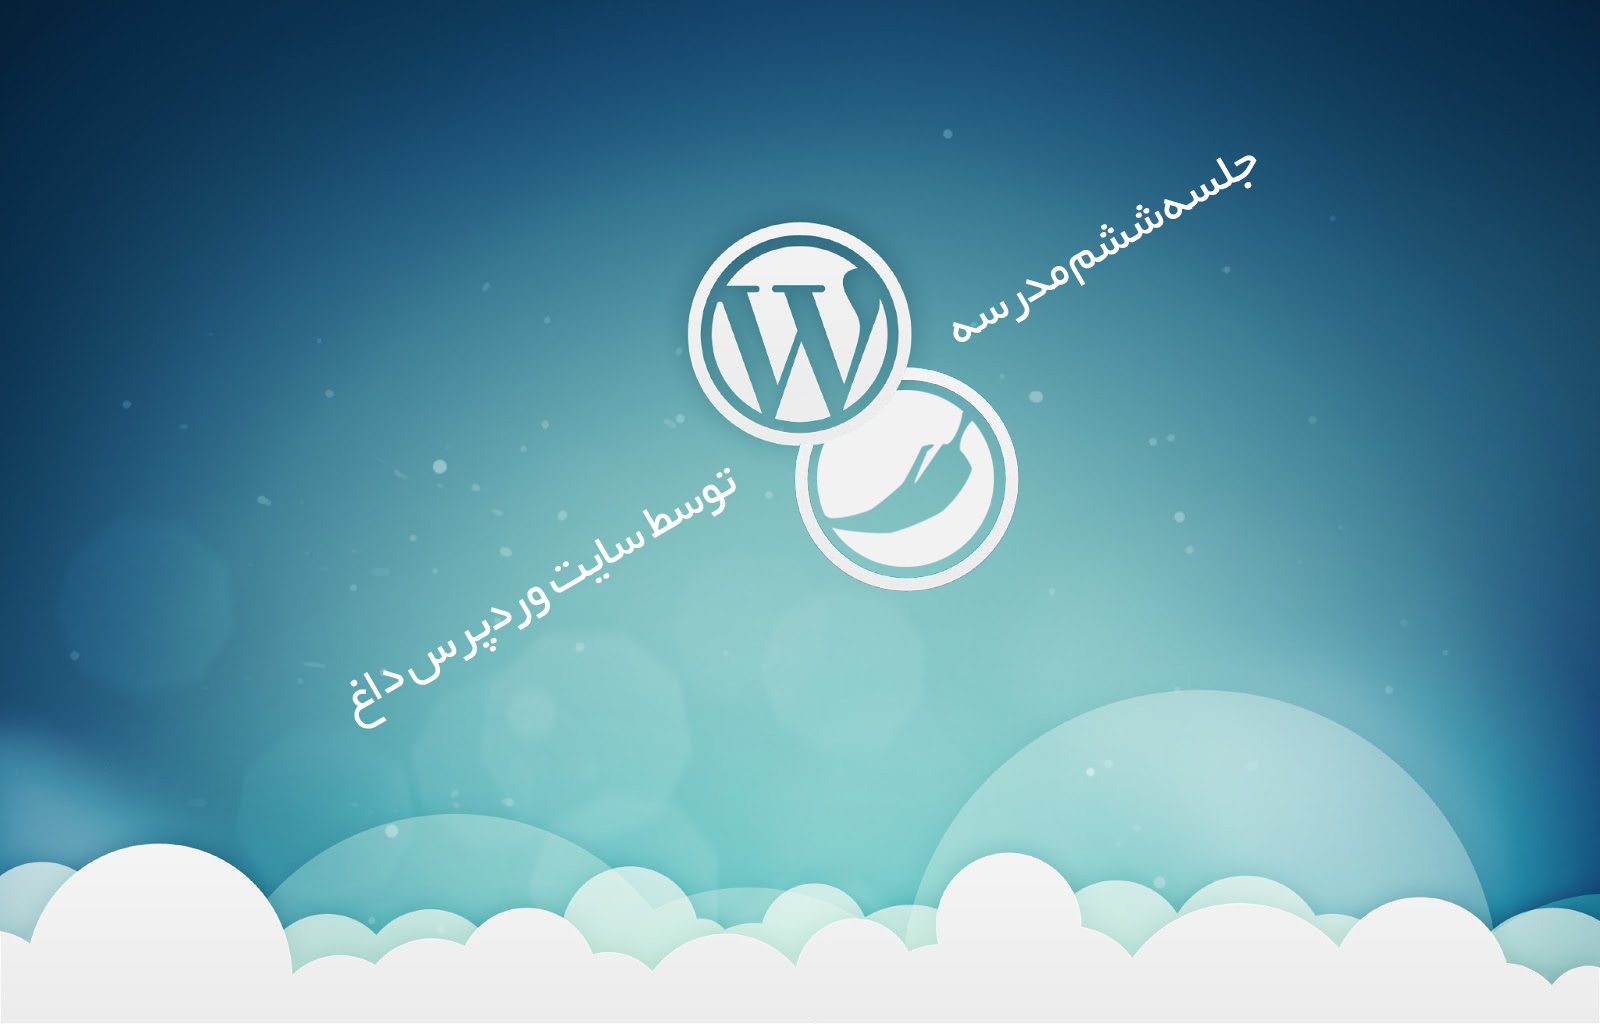 school-wordpress-redwp-6